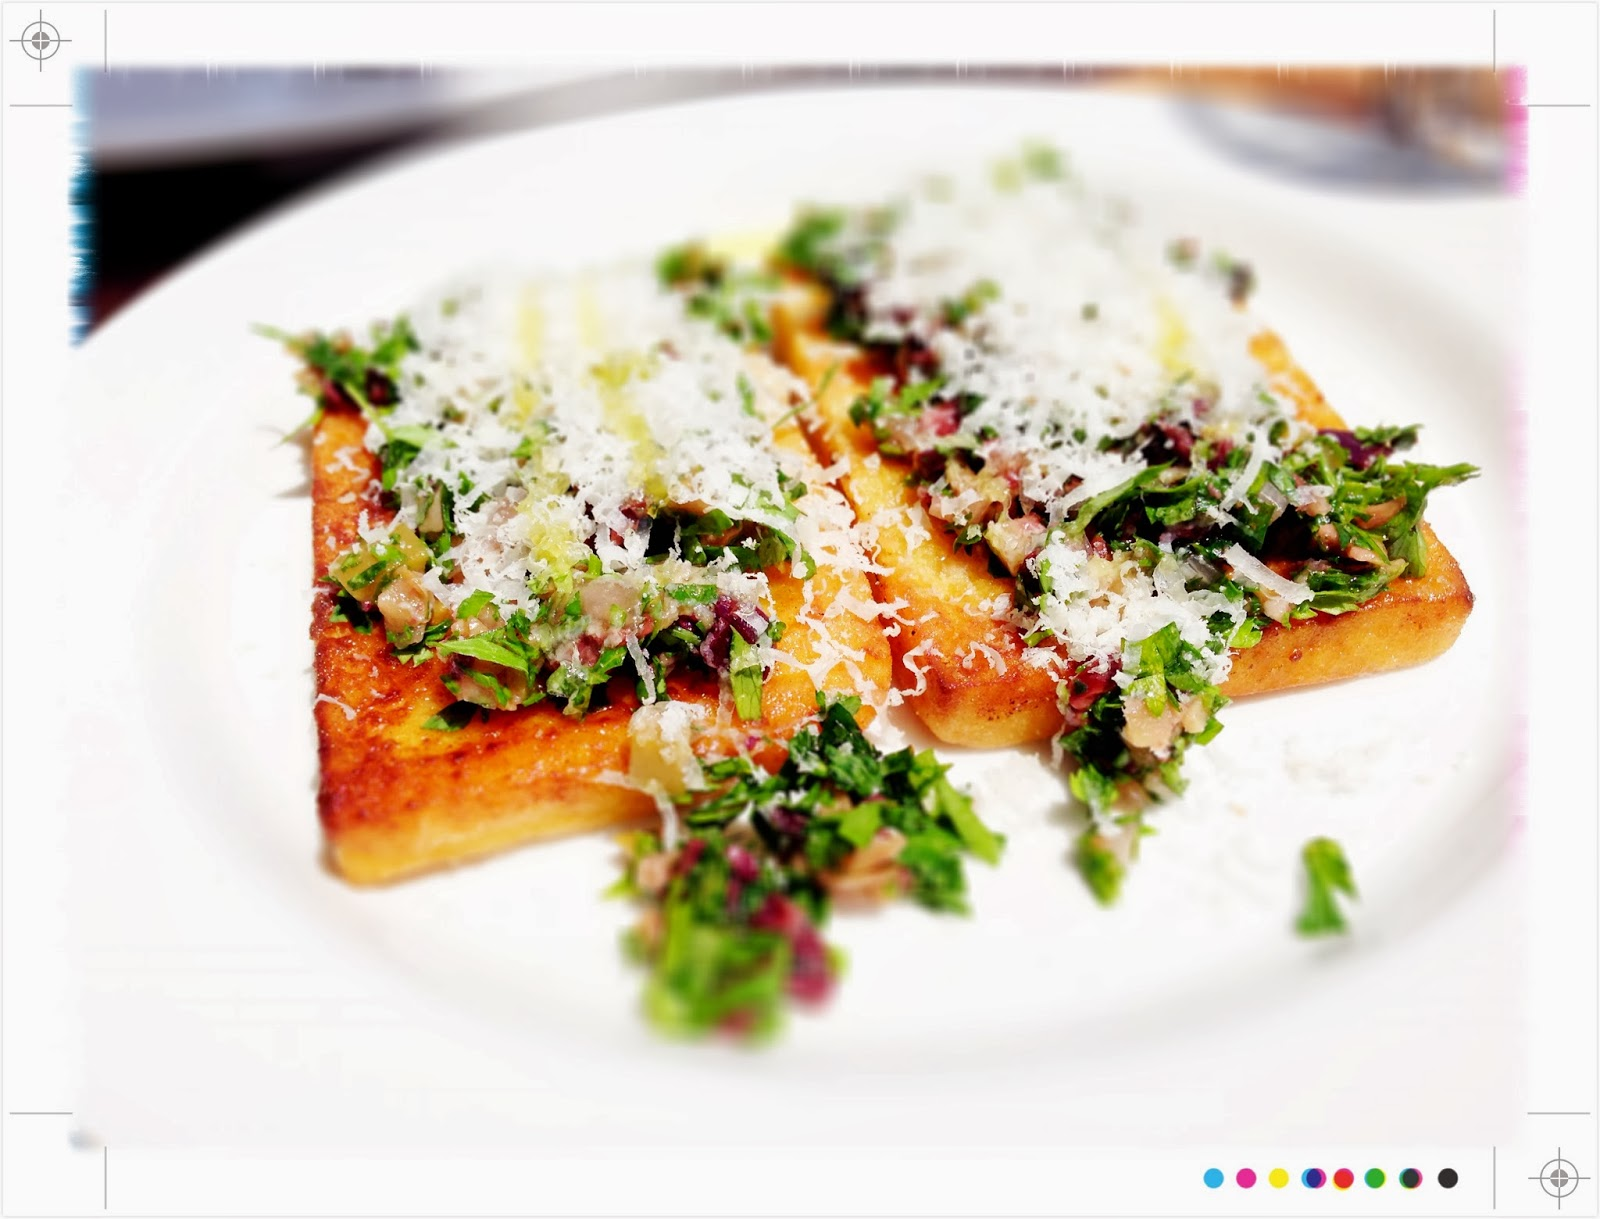 Fried Chickpea Polenta (Panelle) Recipes — Dishmaps